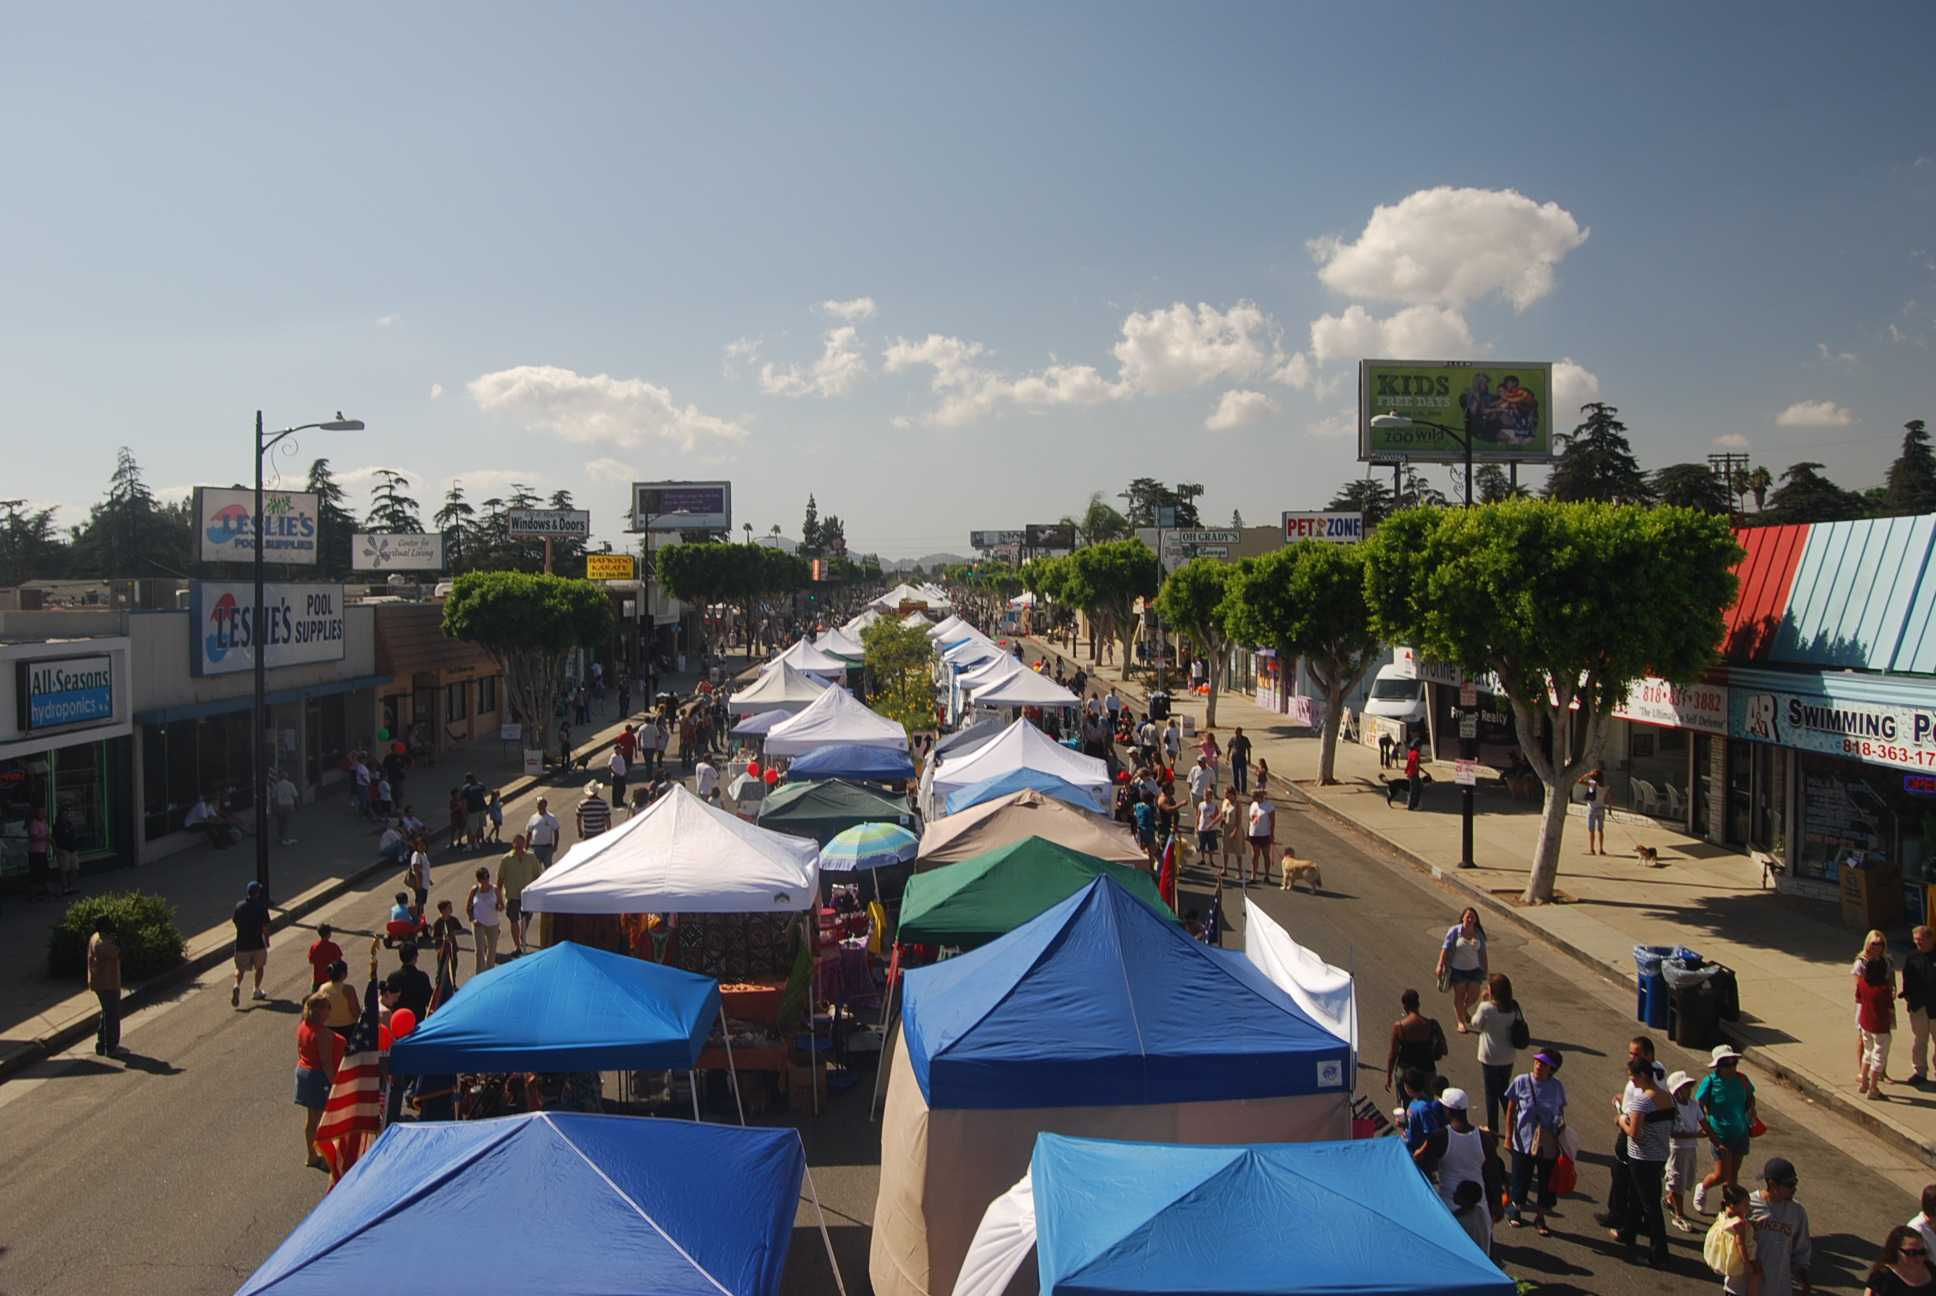 street+fair+tents+and+shoppers